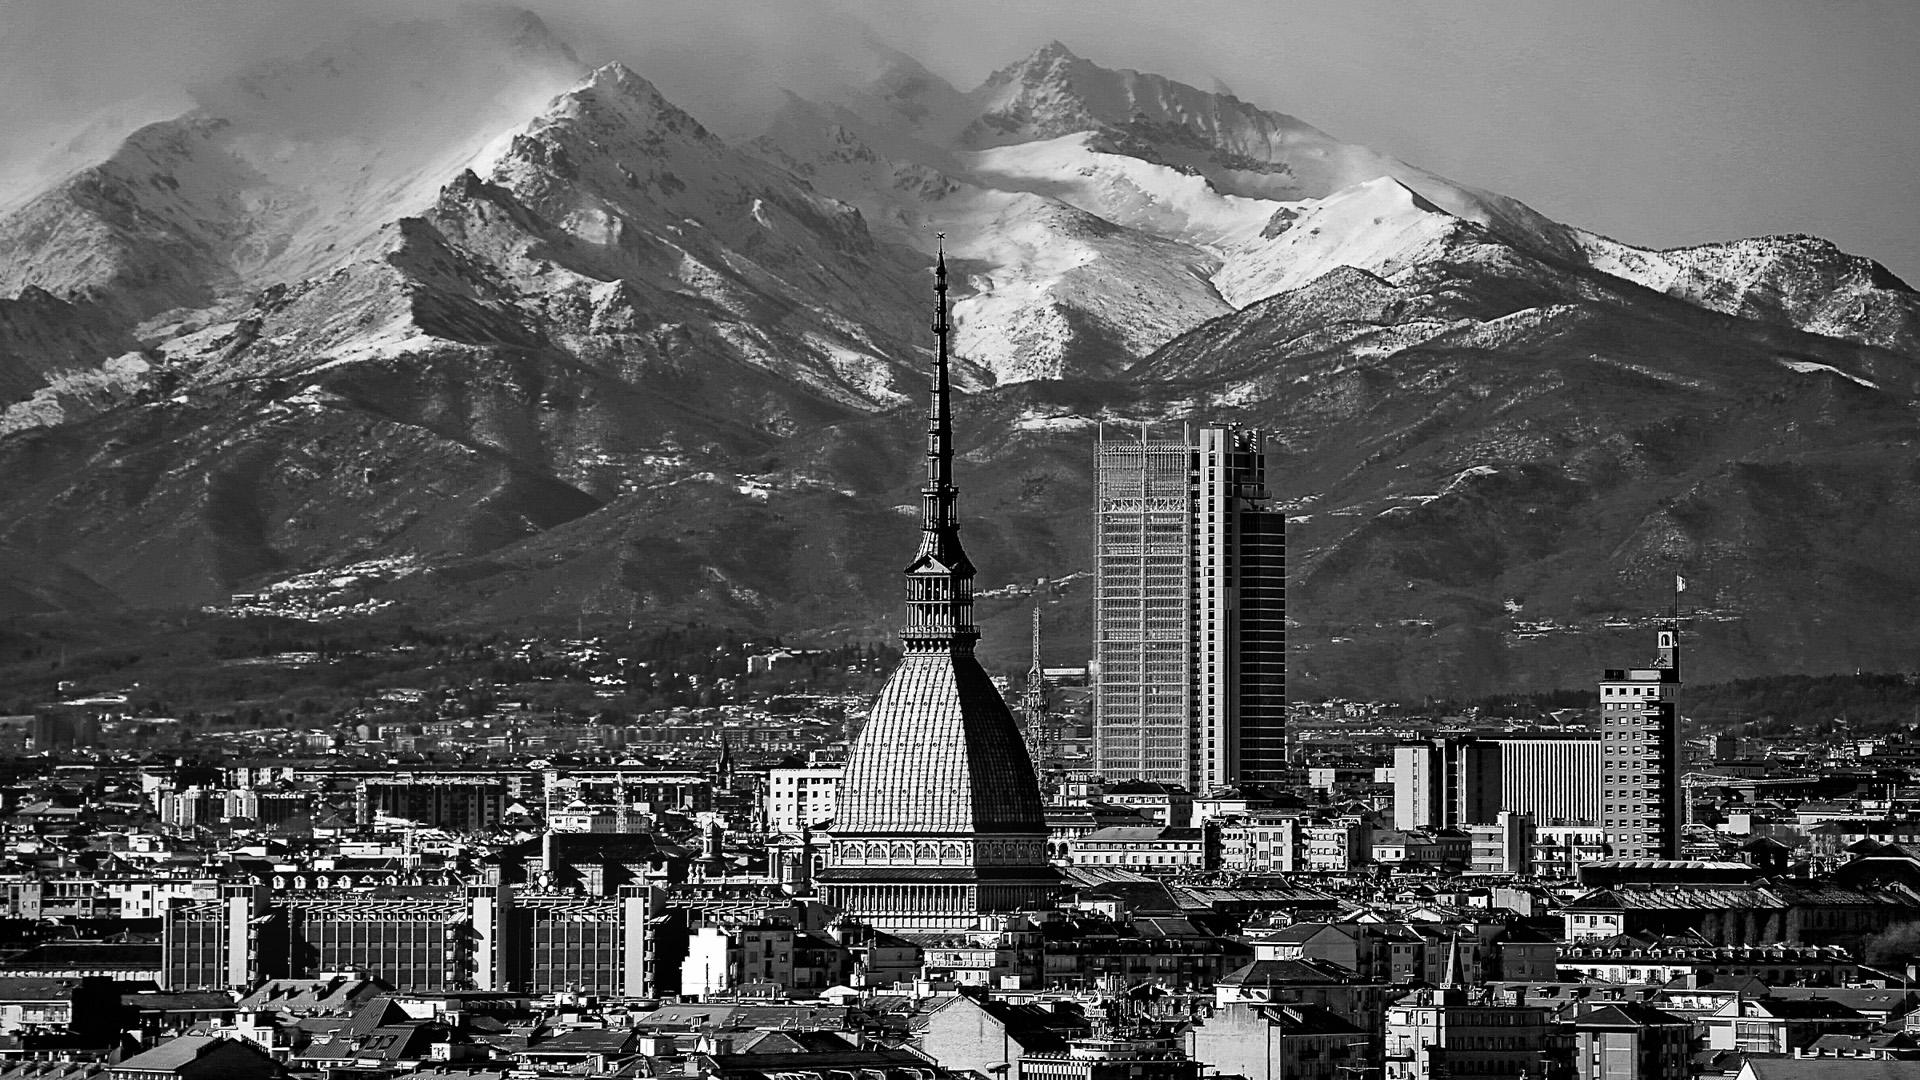 TORINO IS A CITY THAT CAN SURPRISE THE WORLD